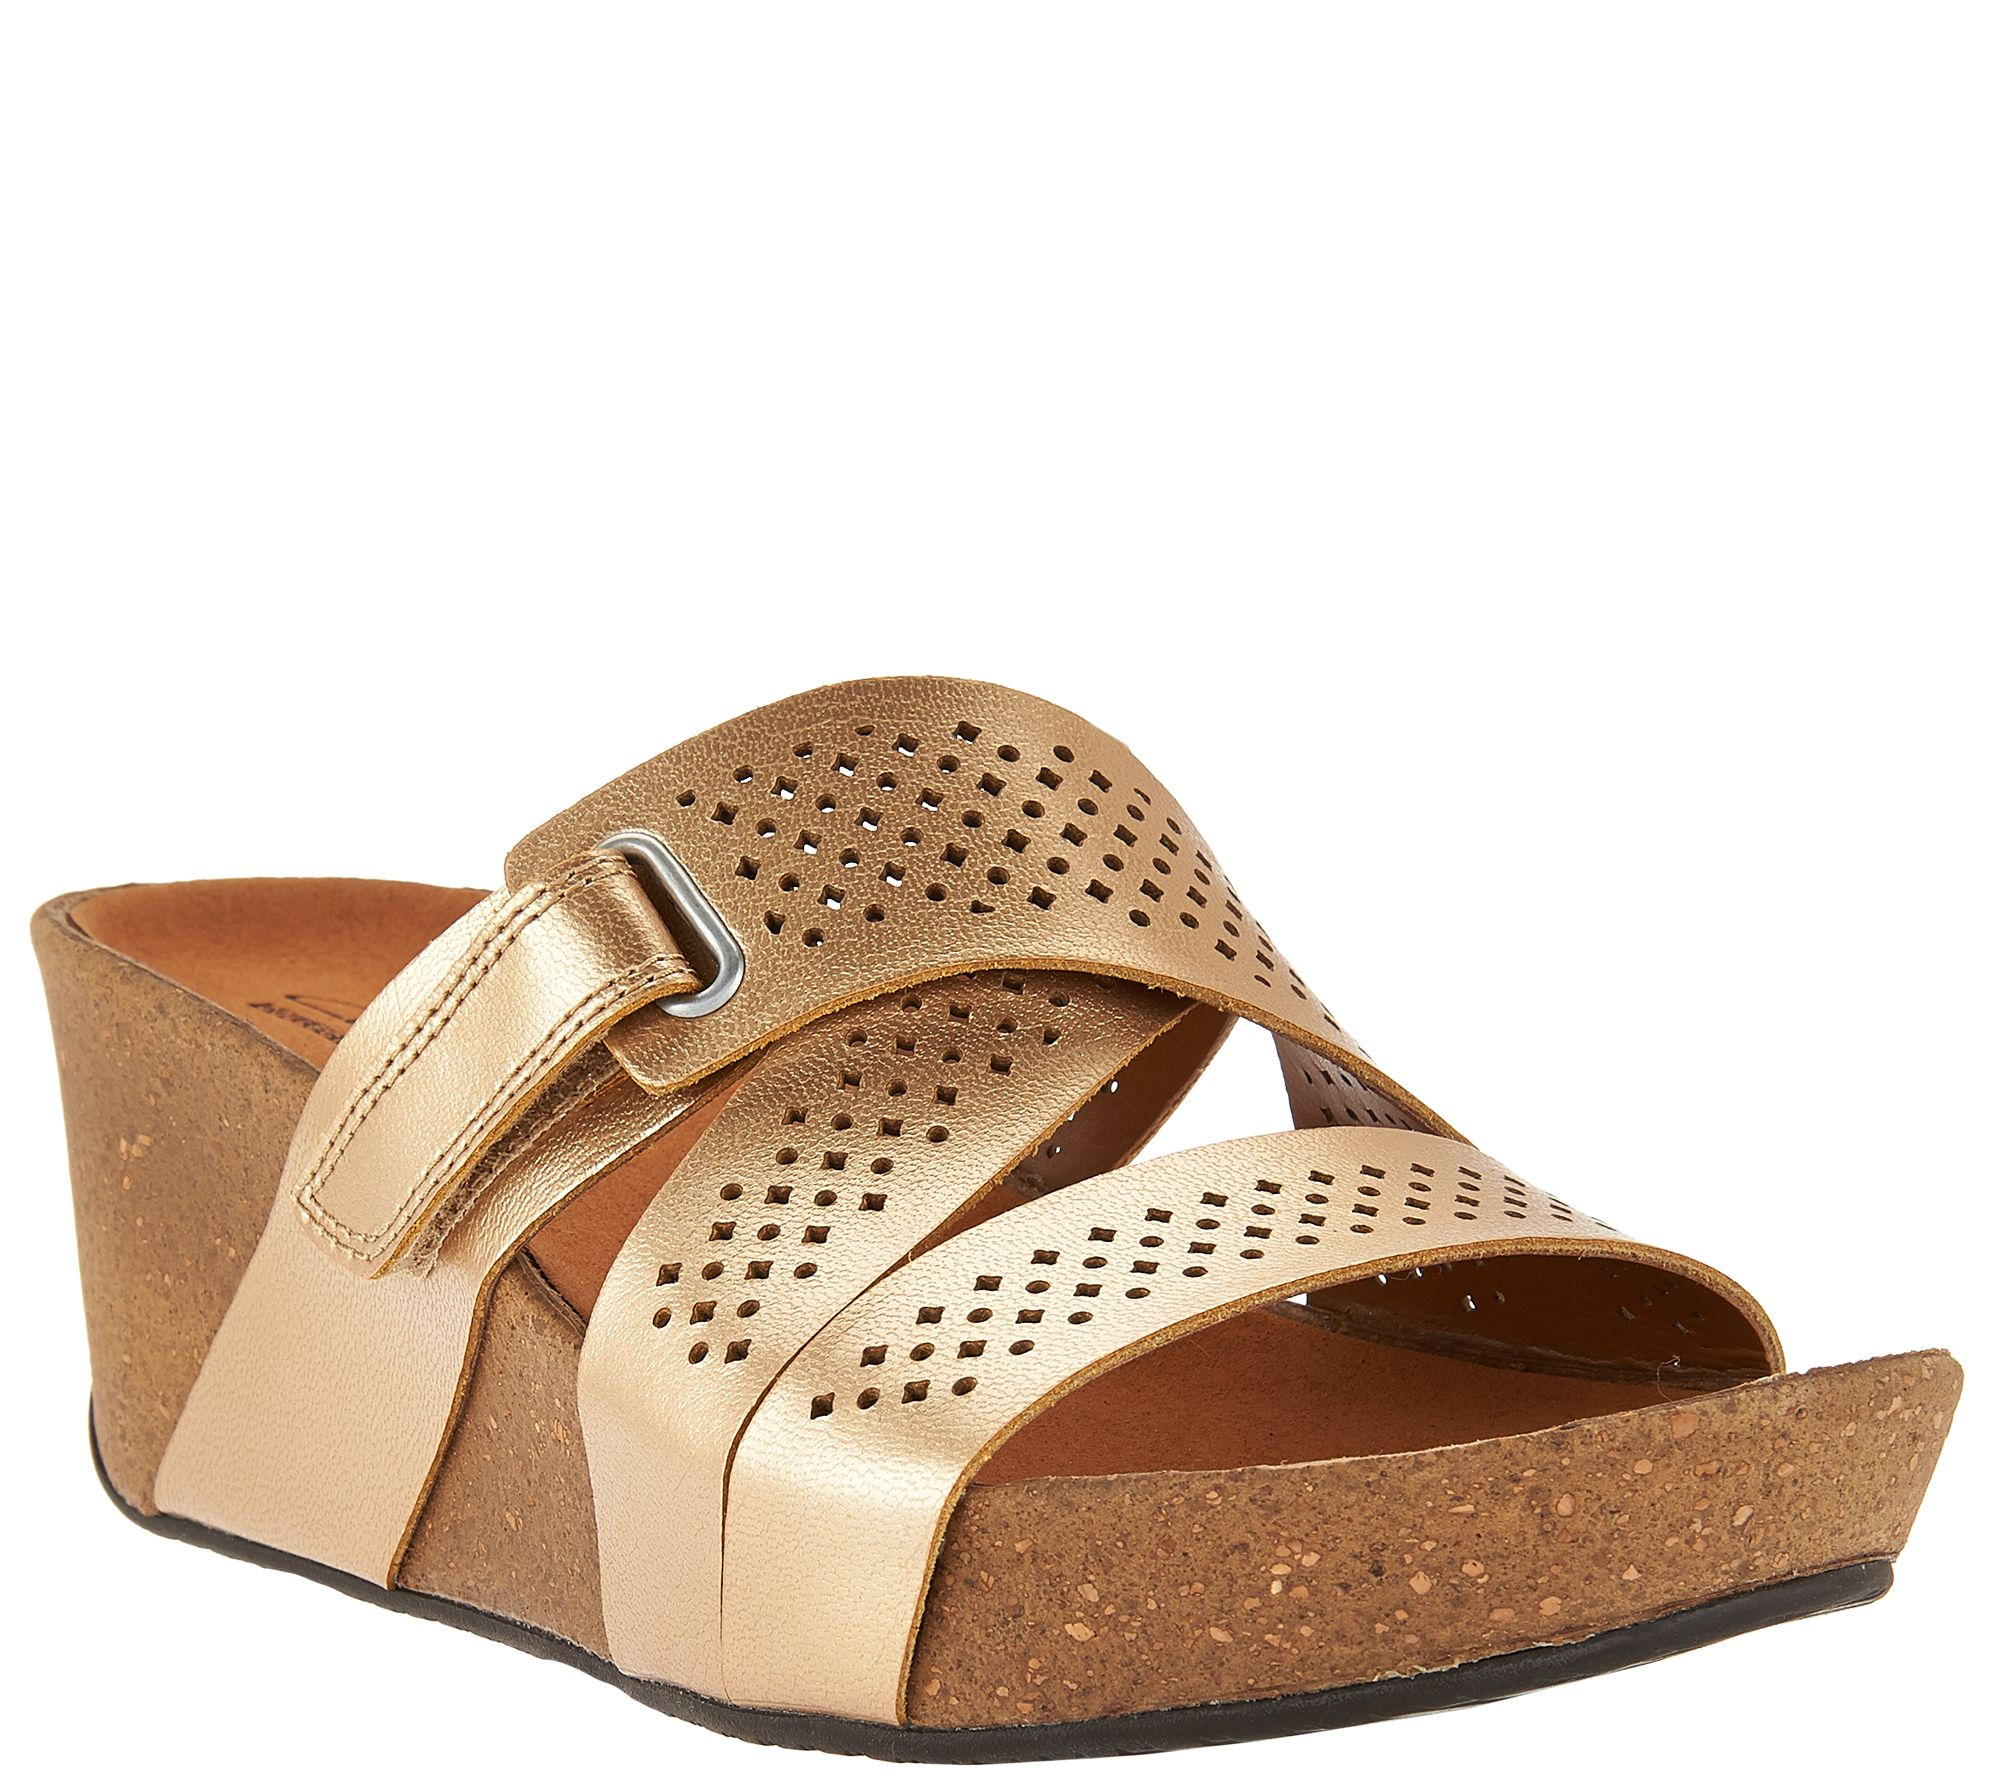 Clarks Leather Perforated Slip On Wedge Sandals Auriel